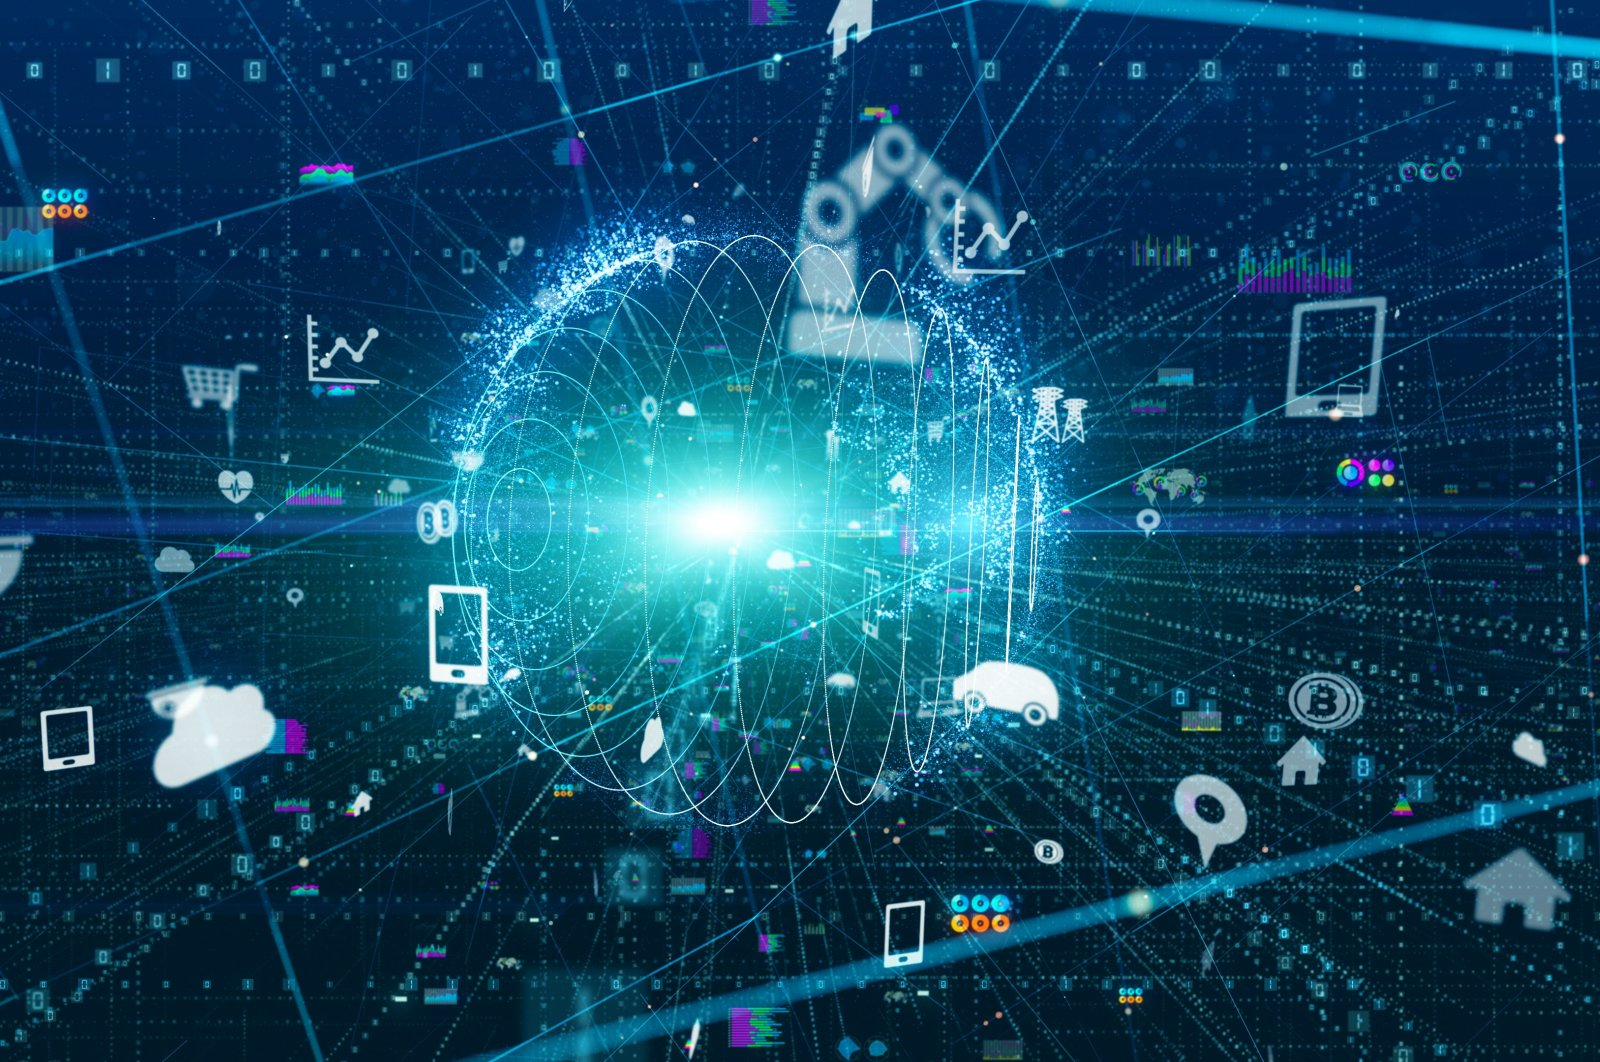 Cerebrum Tech's business areas include AI, data analytics, blockchain and cybersecurity. (iStock Photo)